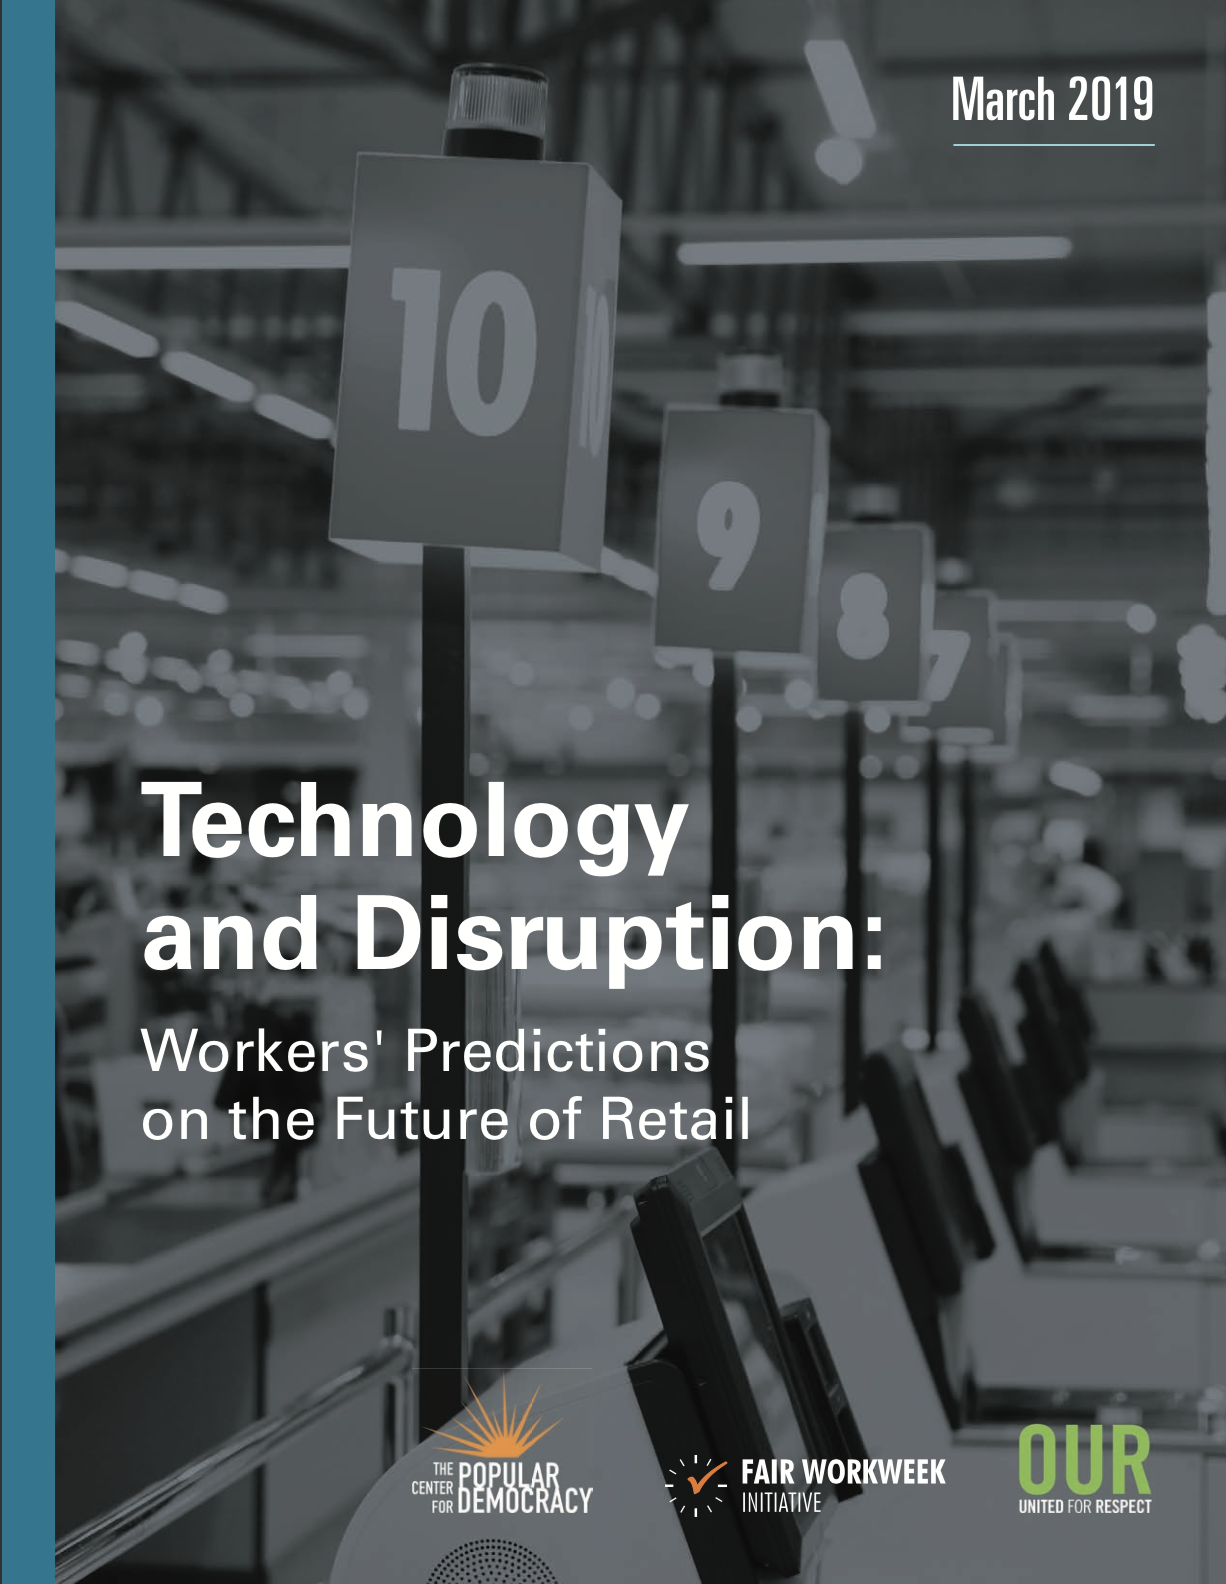 Technology and Disruption: Workers' Predictions on the Future of Retail